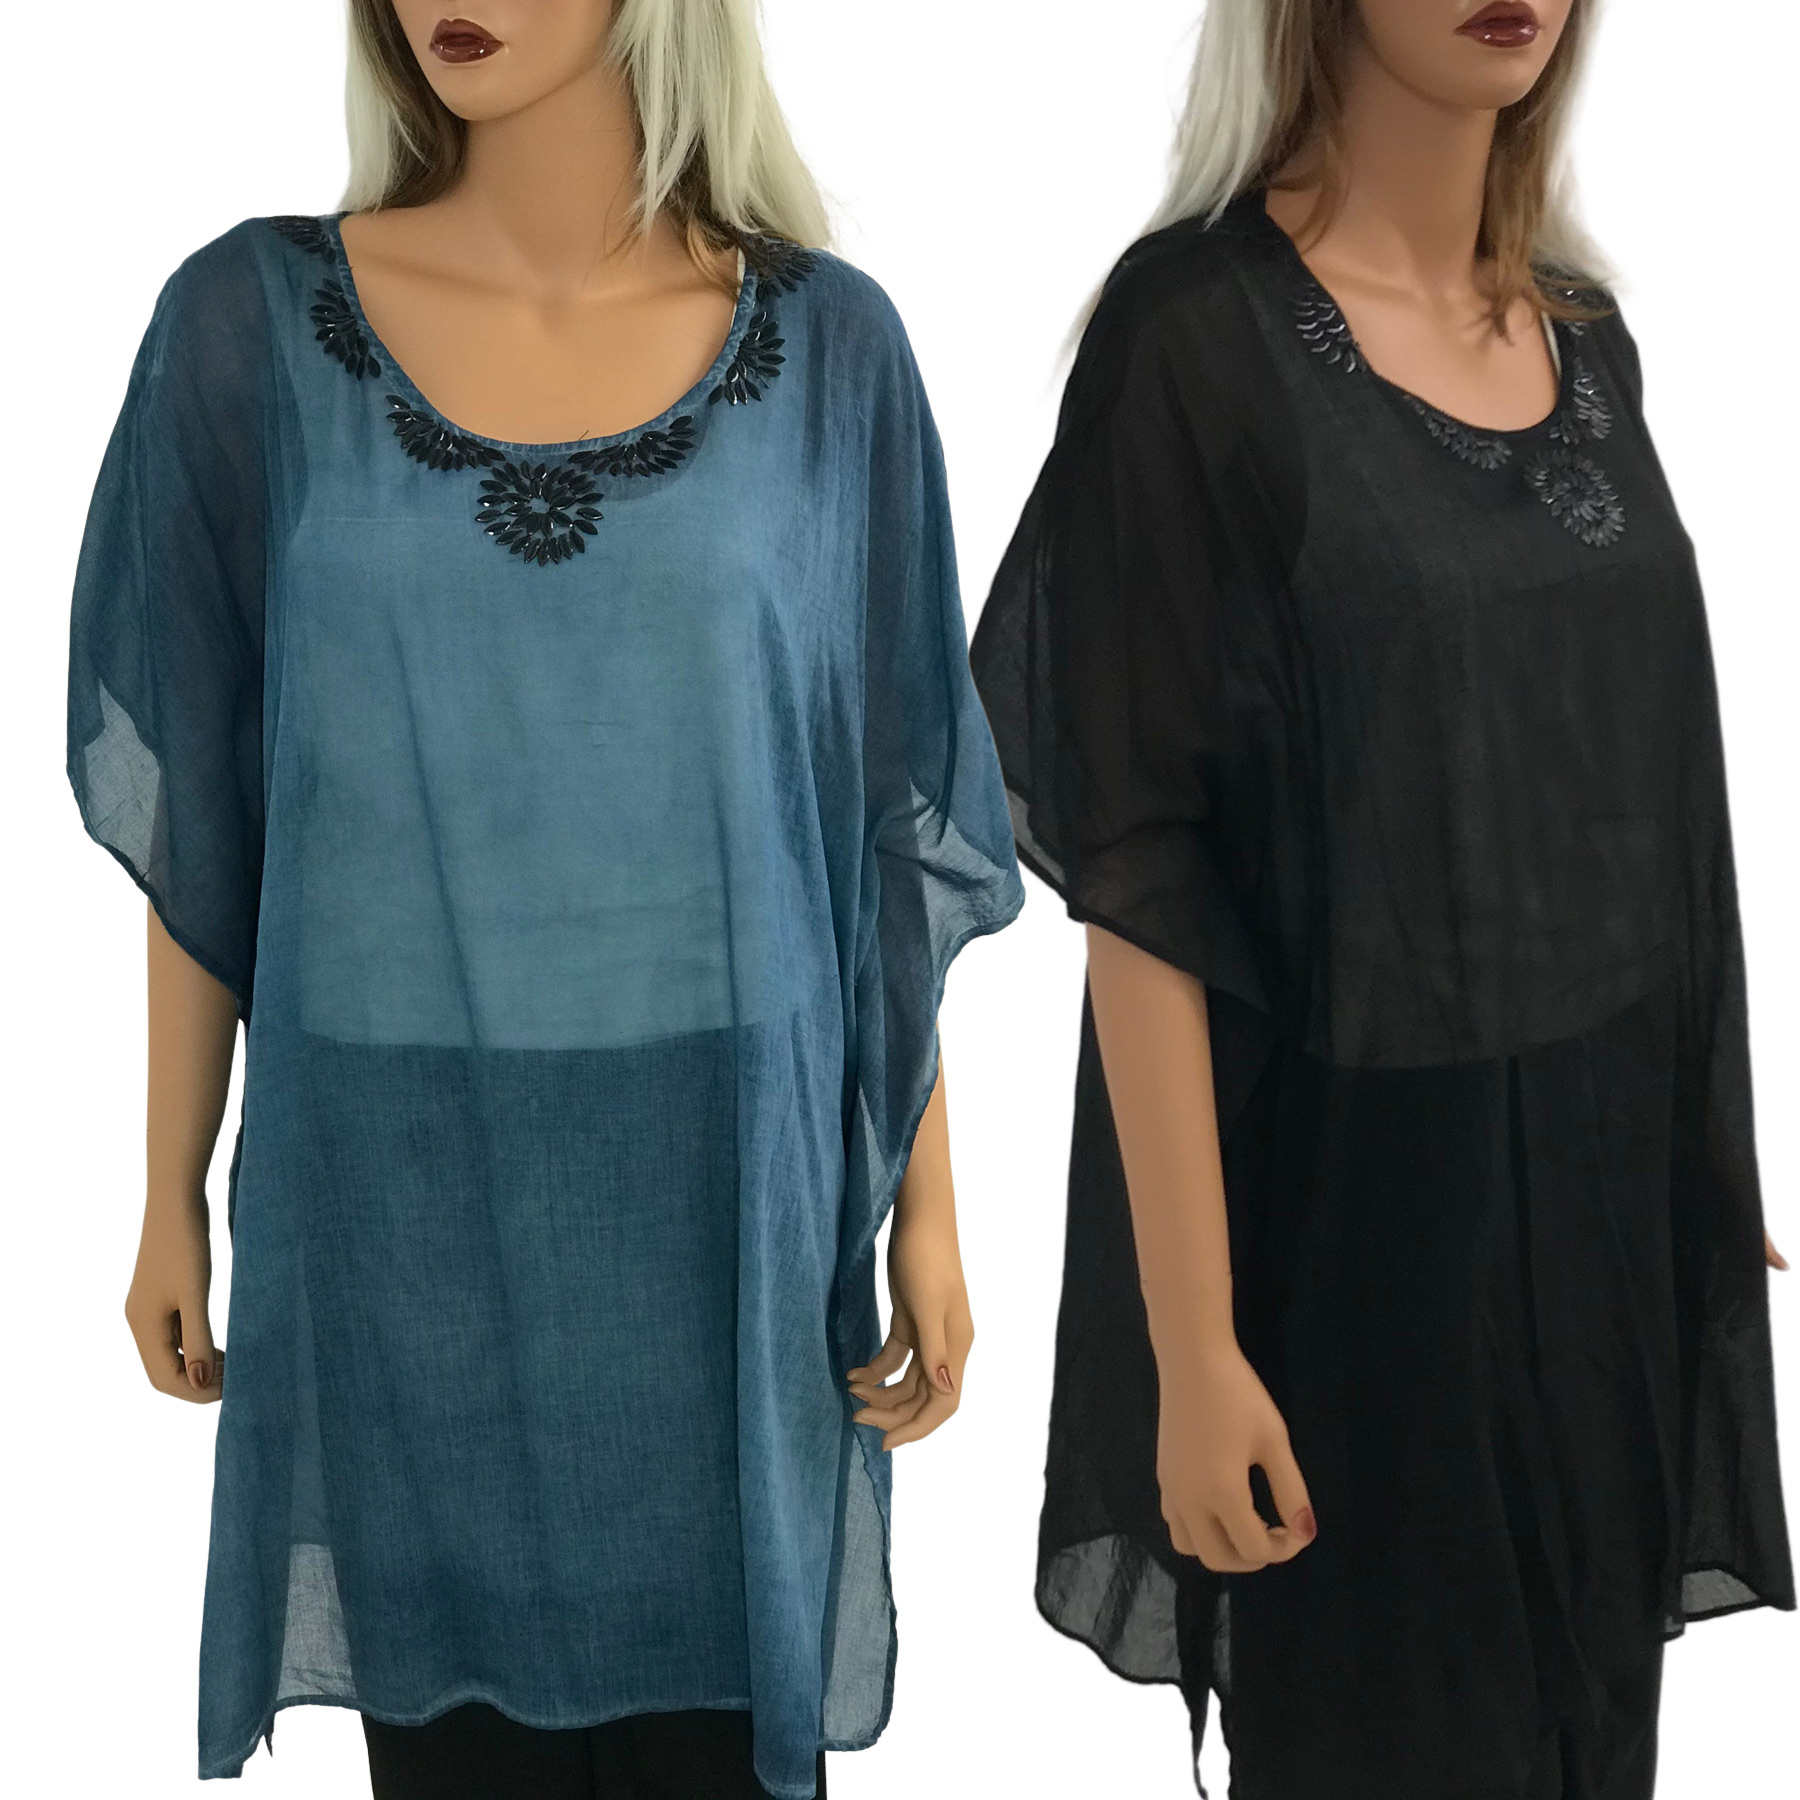 Kaftan Style Tops - Solid with Beading 0175